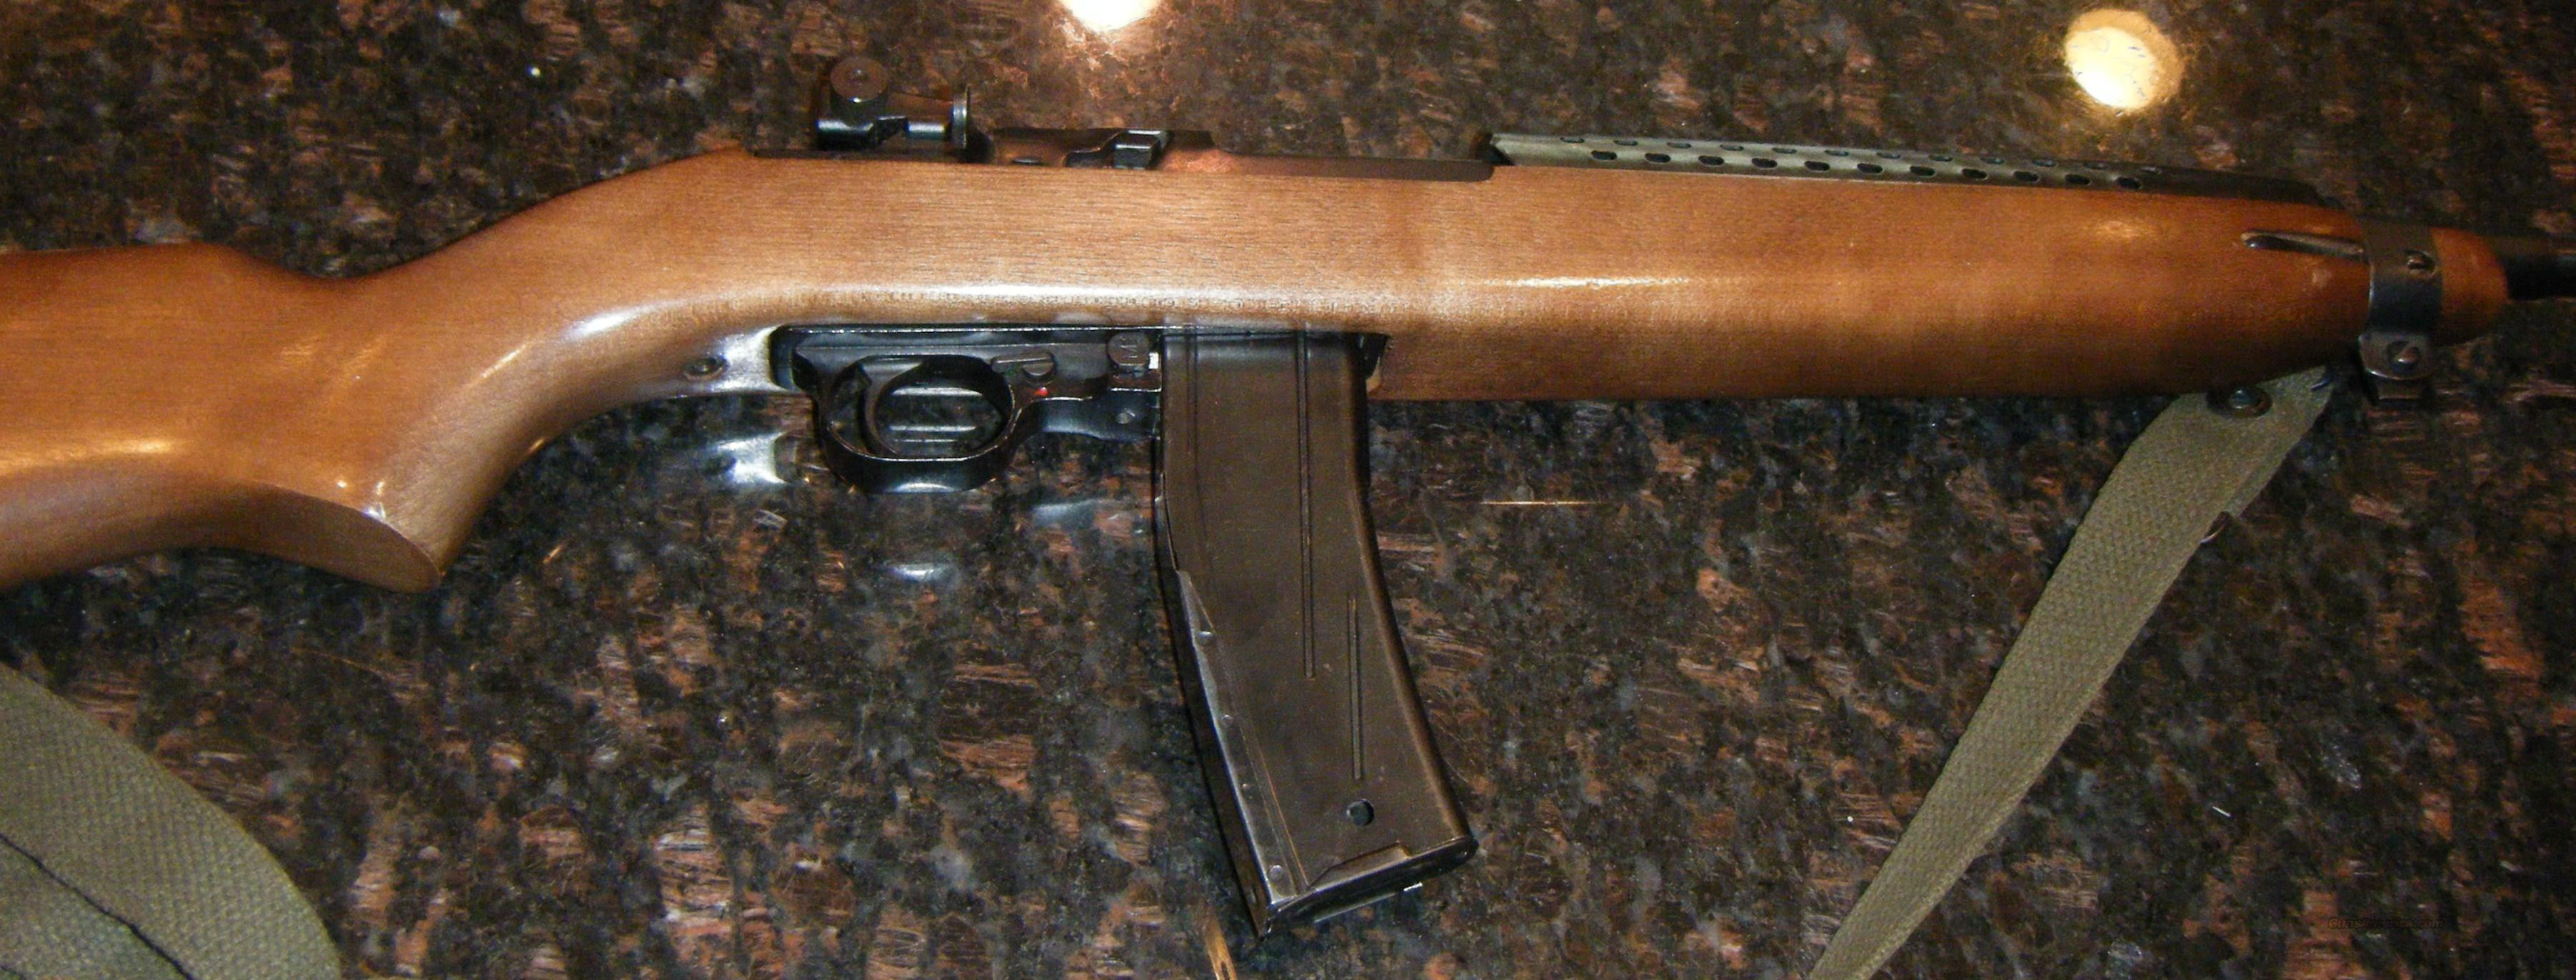 Universal Arms 1000 M1 Carbine Wwll Copy For Sale